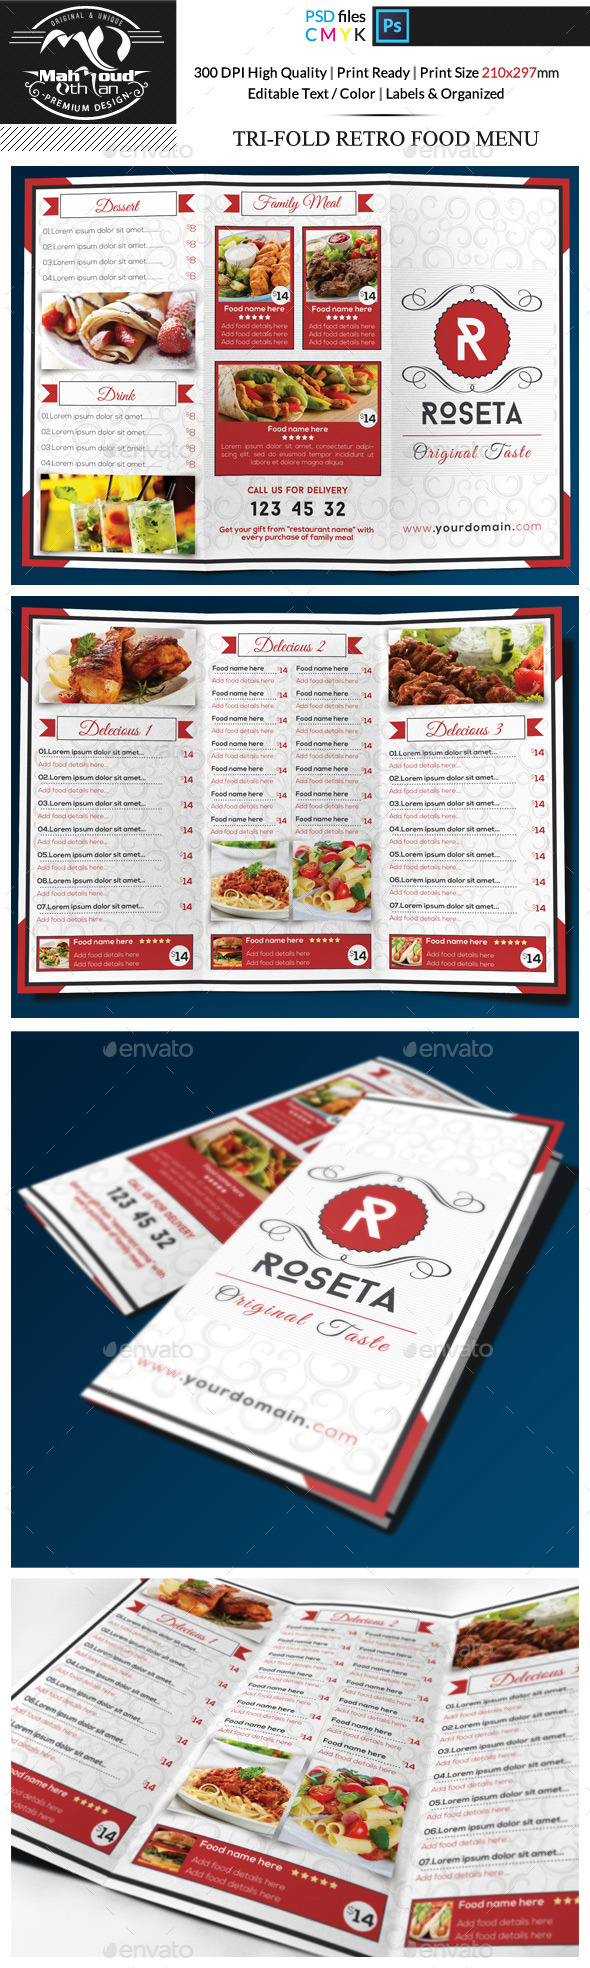 Retro Restaurant Food Menu Trifold  - Food Menus Print Templates